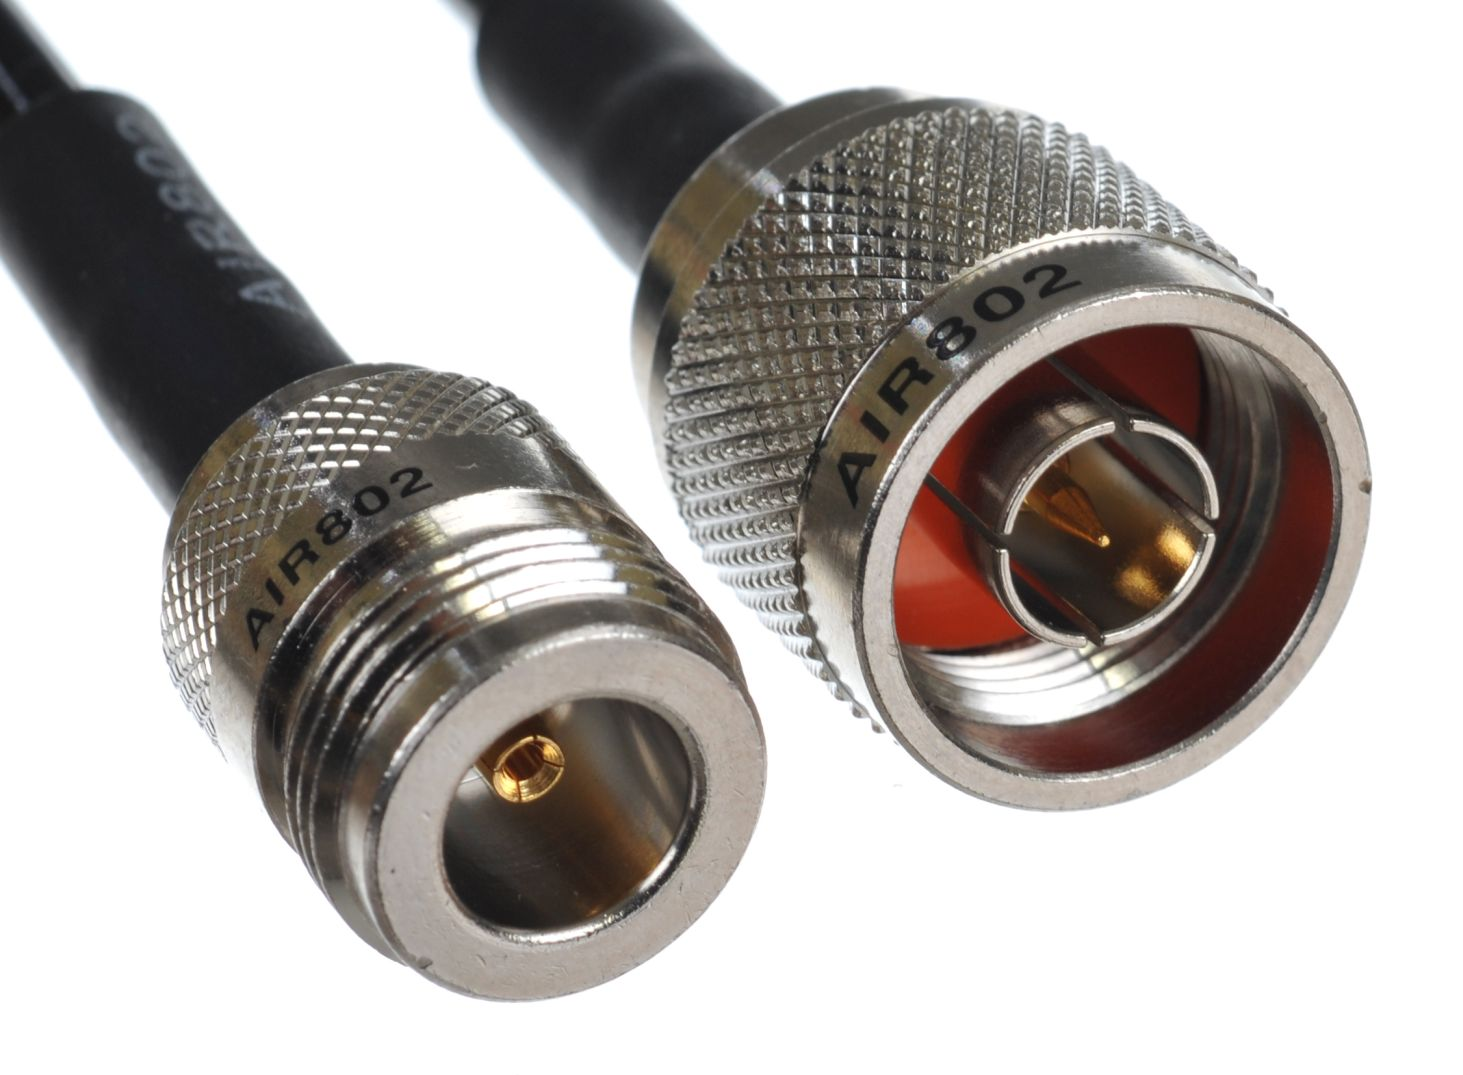 CA195 8 feet black n plug or male to n jack or female antenna cable assembly or jumper equivalent to lmr195 and a rg58 replacement